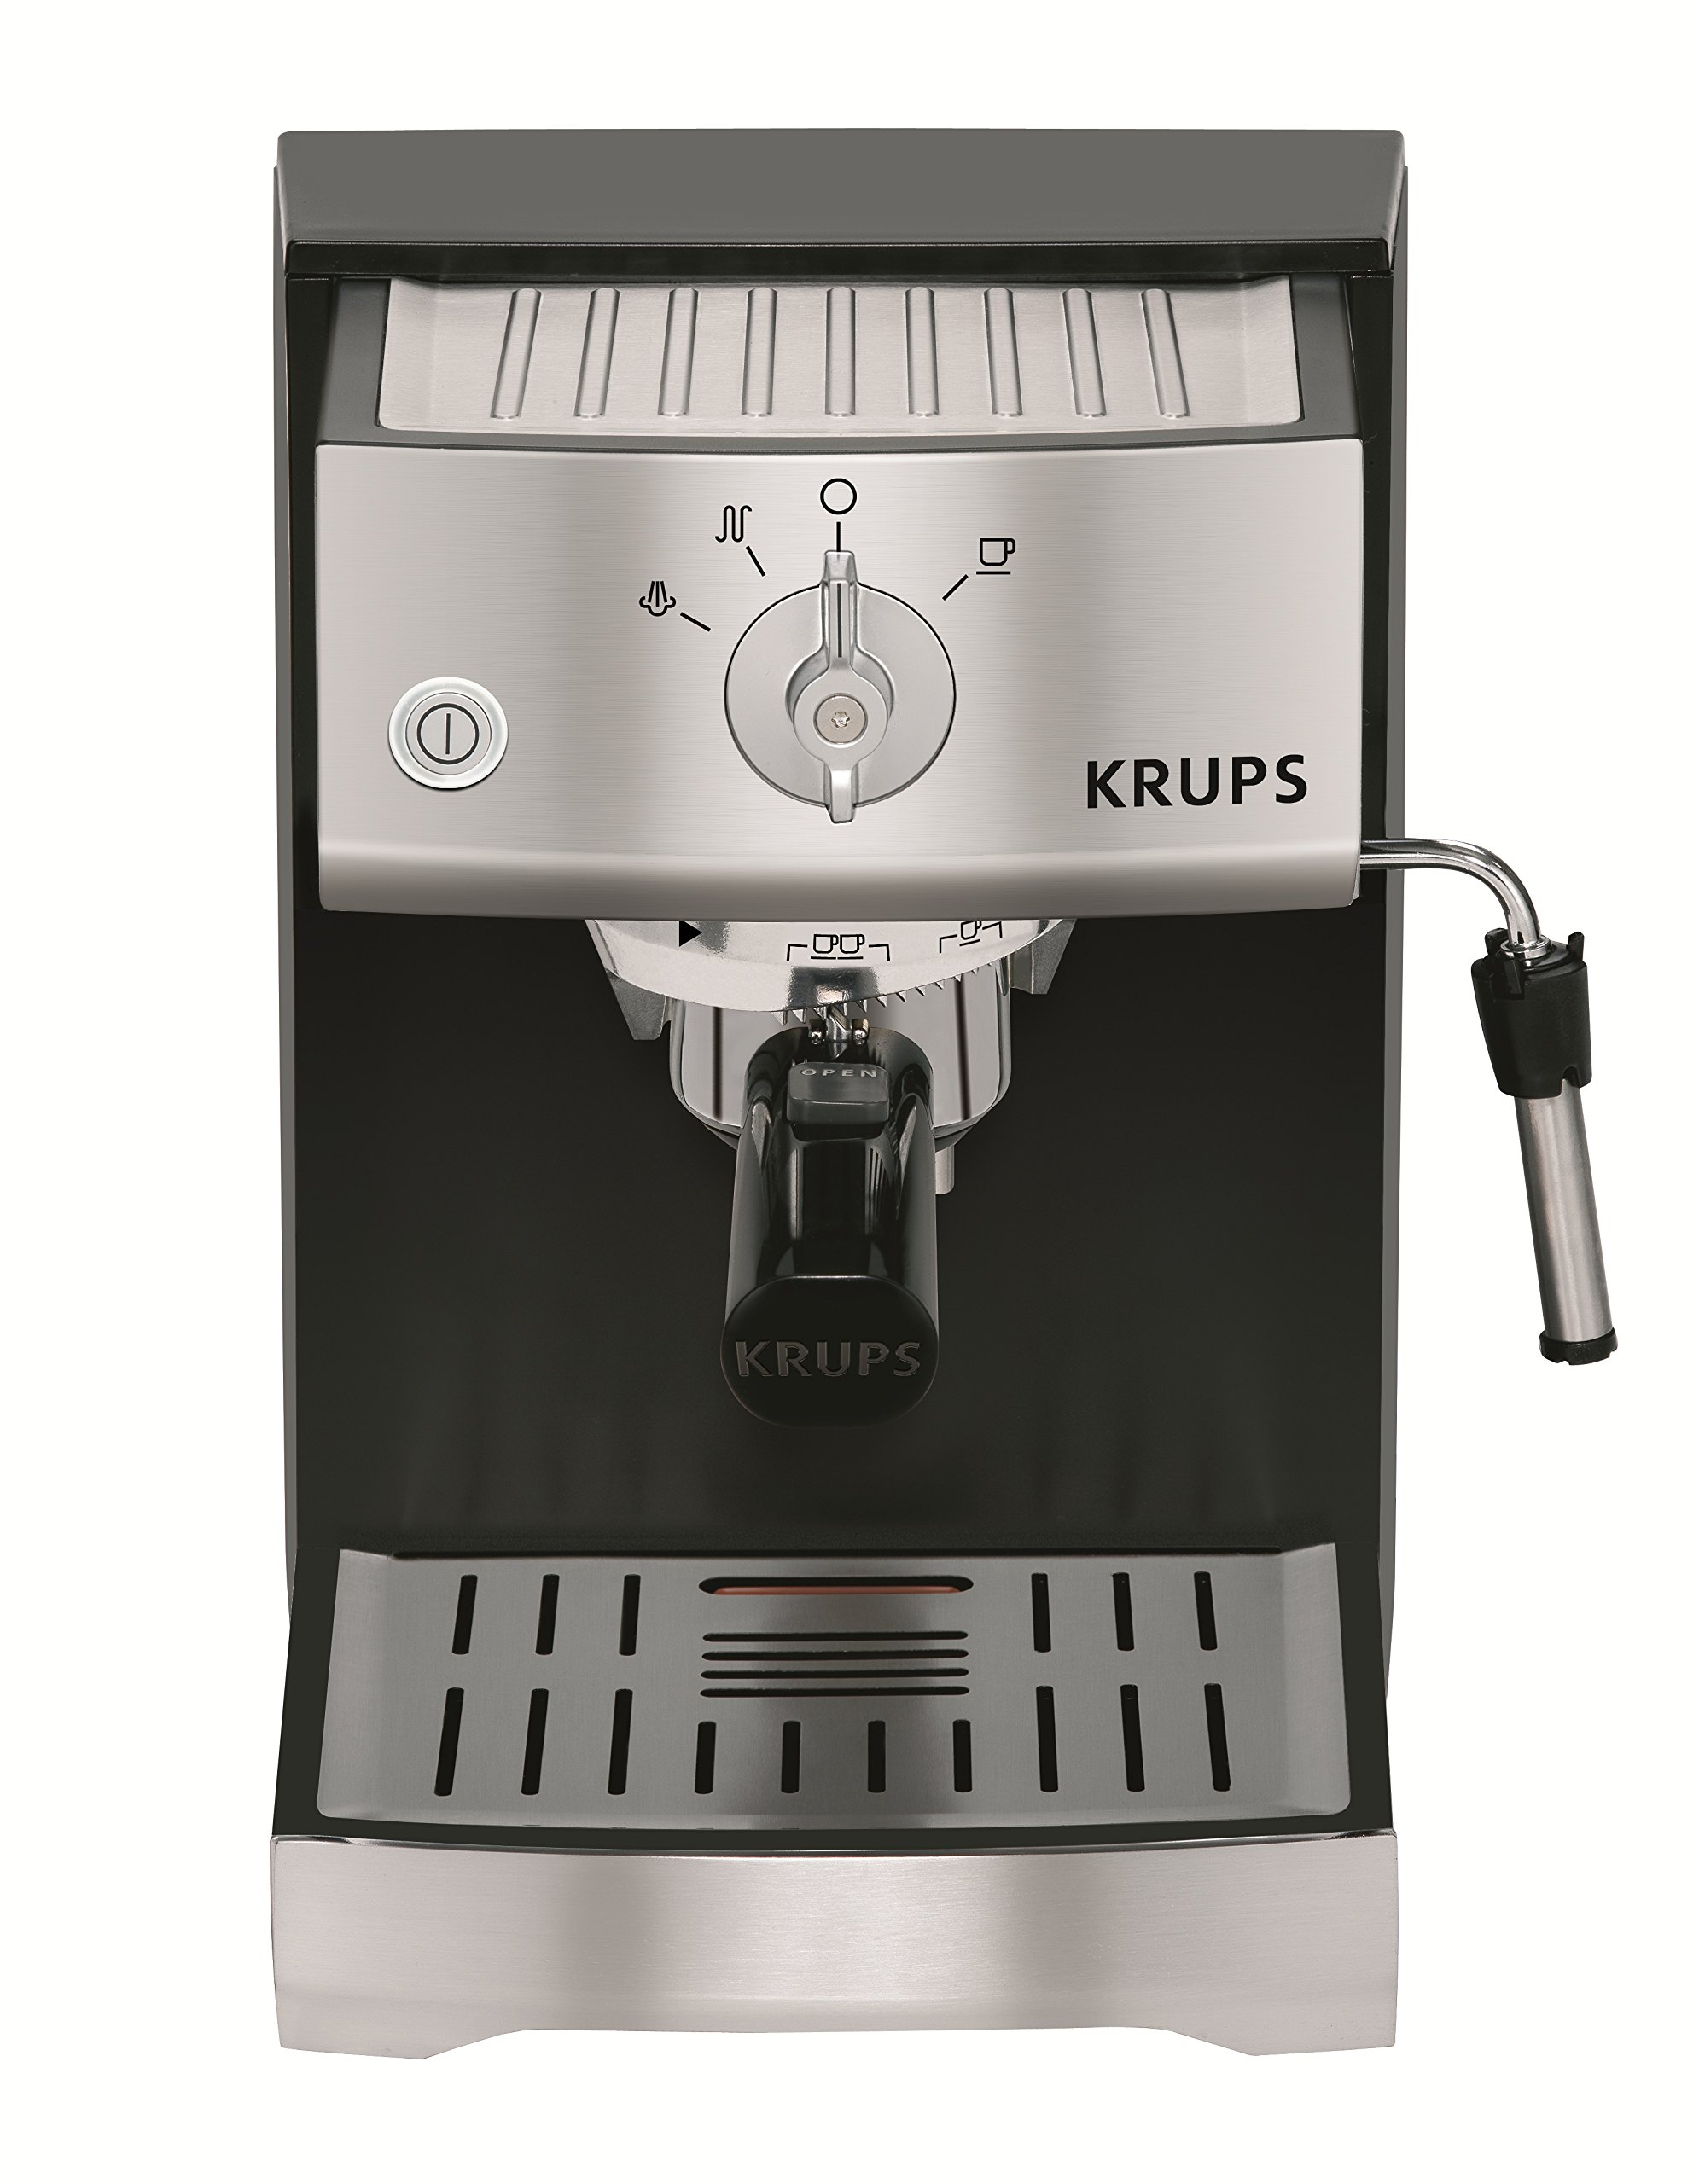 KRUPS XP5220 Pump Espresso Machine with KRUPS Precise Tamp Technology and Stainless Steel Control Panel, Black by KRUPS